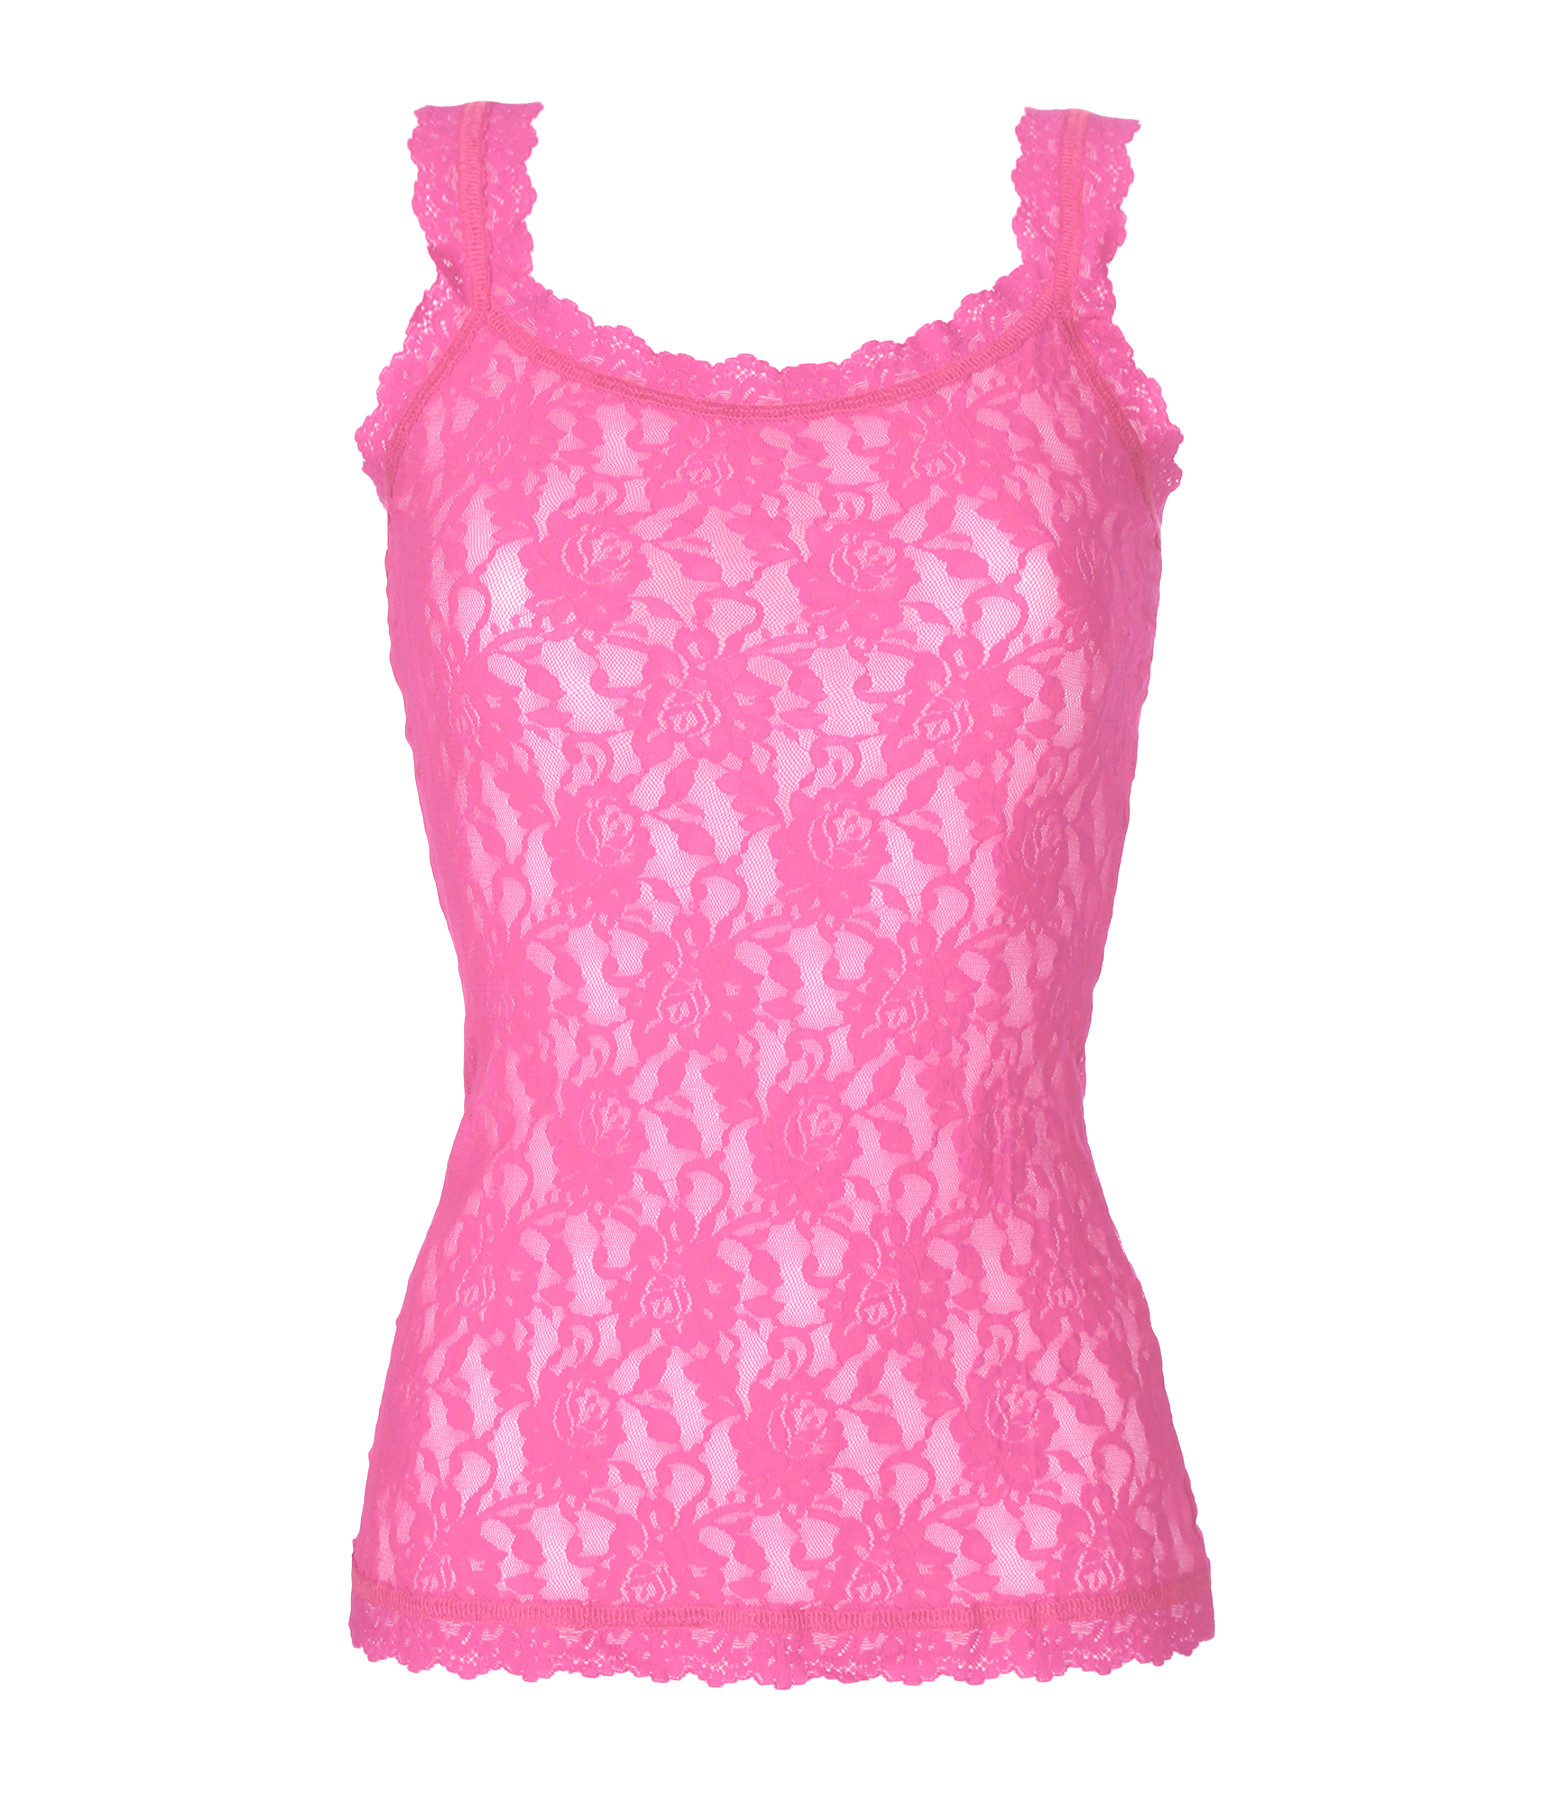 Top Unlined Cami Sizzle Pink - HANKY PANKY